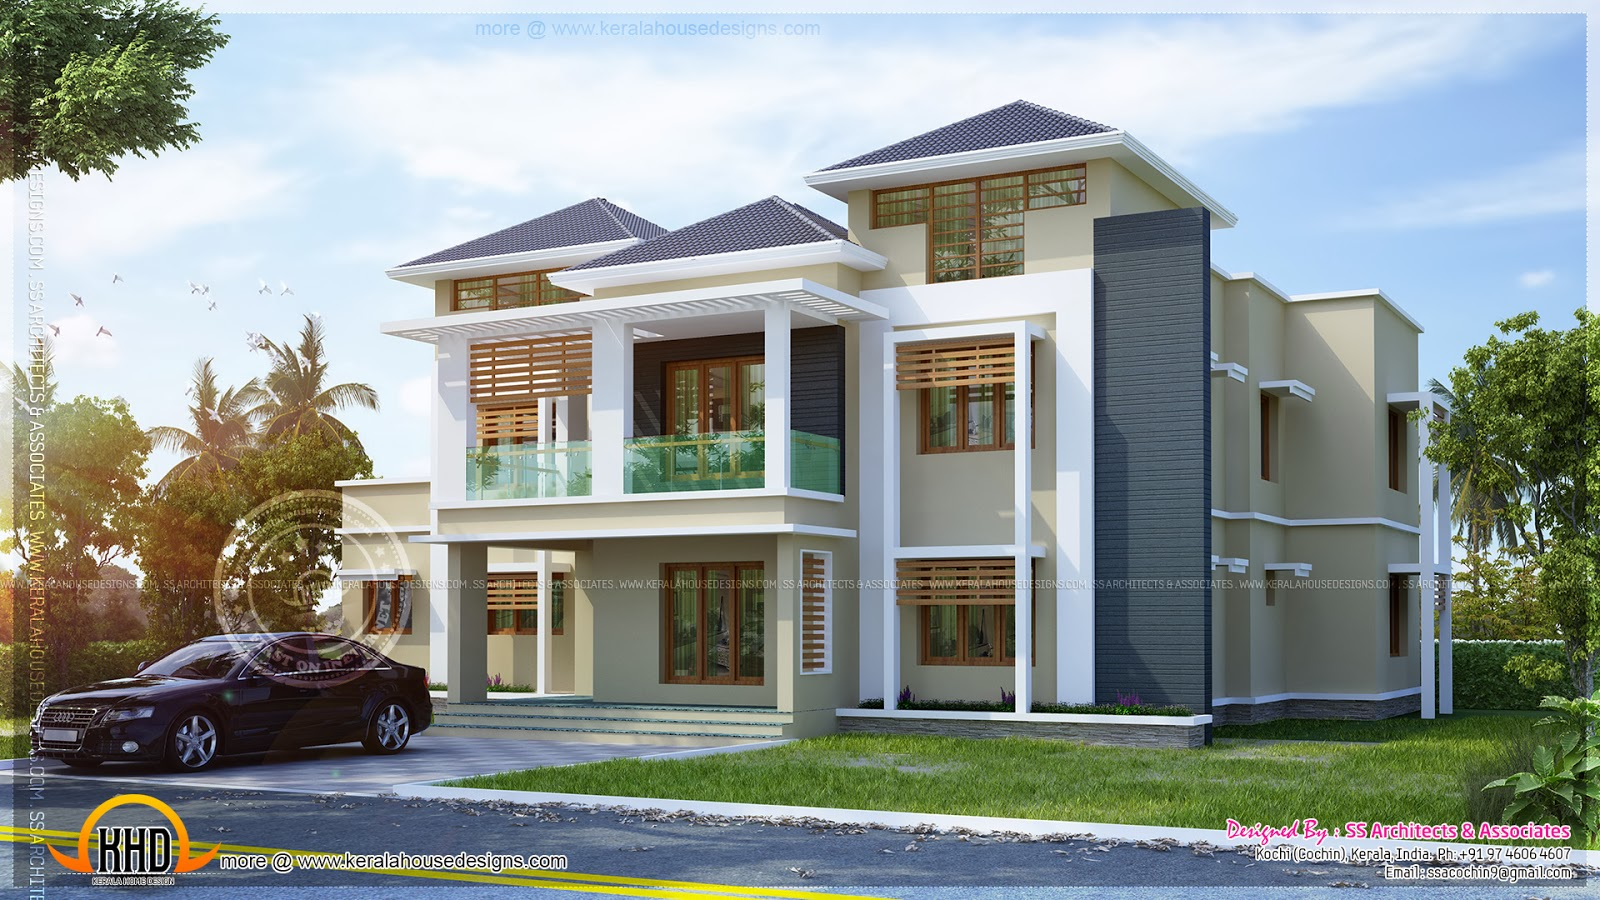 Awesome house plan kerala home design and floor plans for Awesome house blueprints